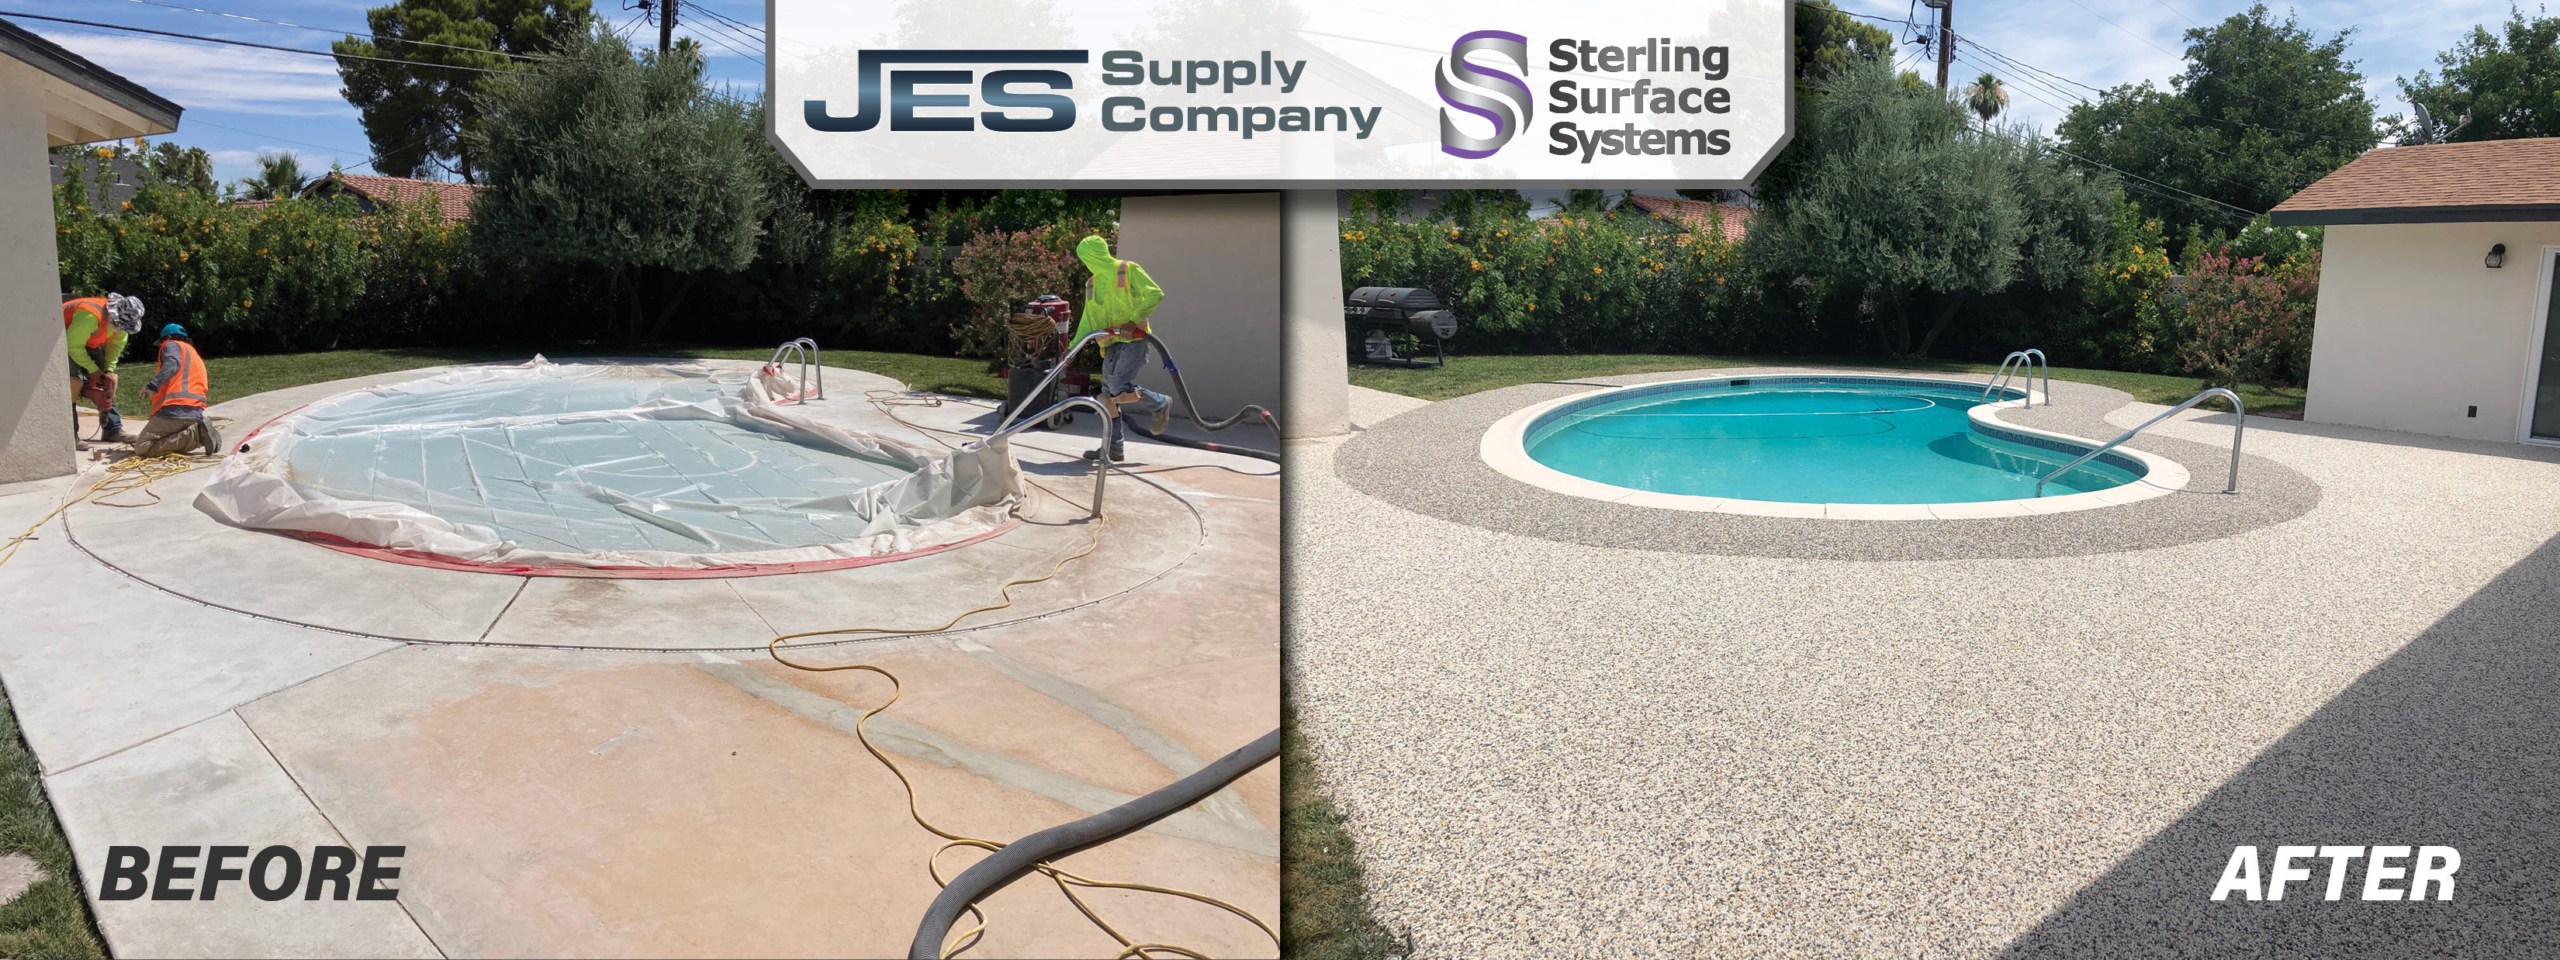 JES Before and After Pool Project